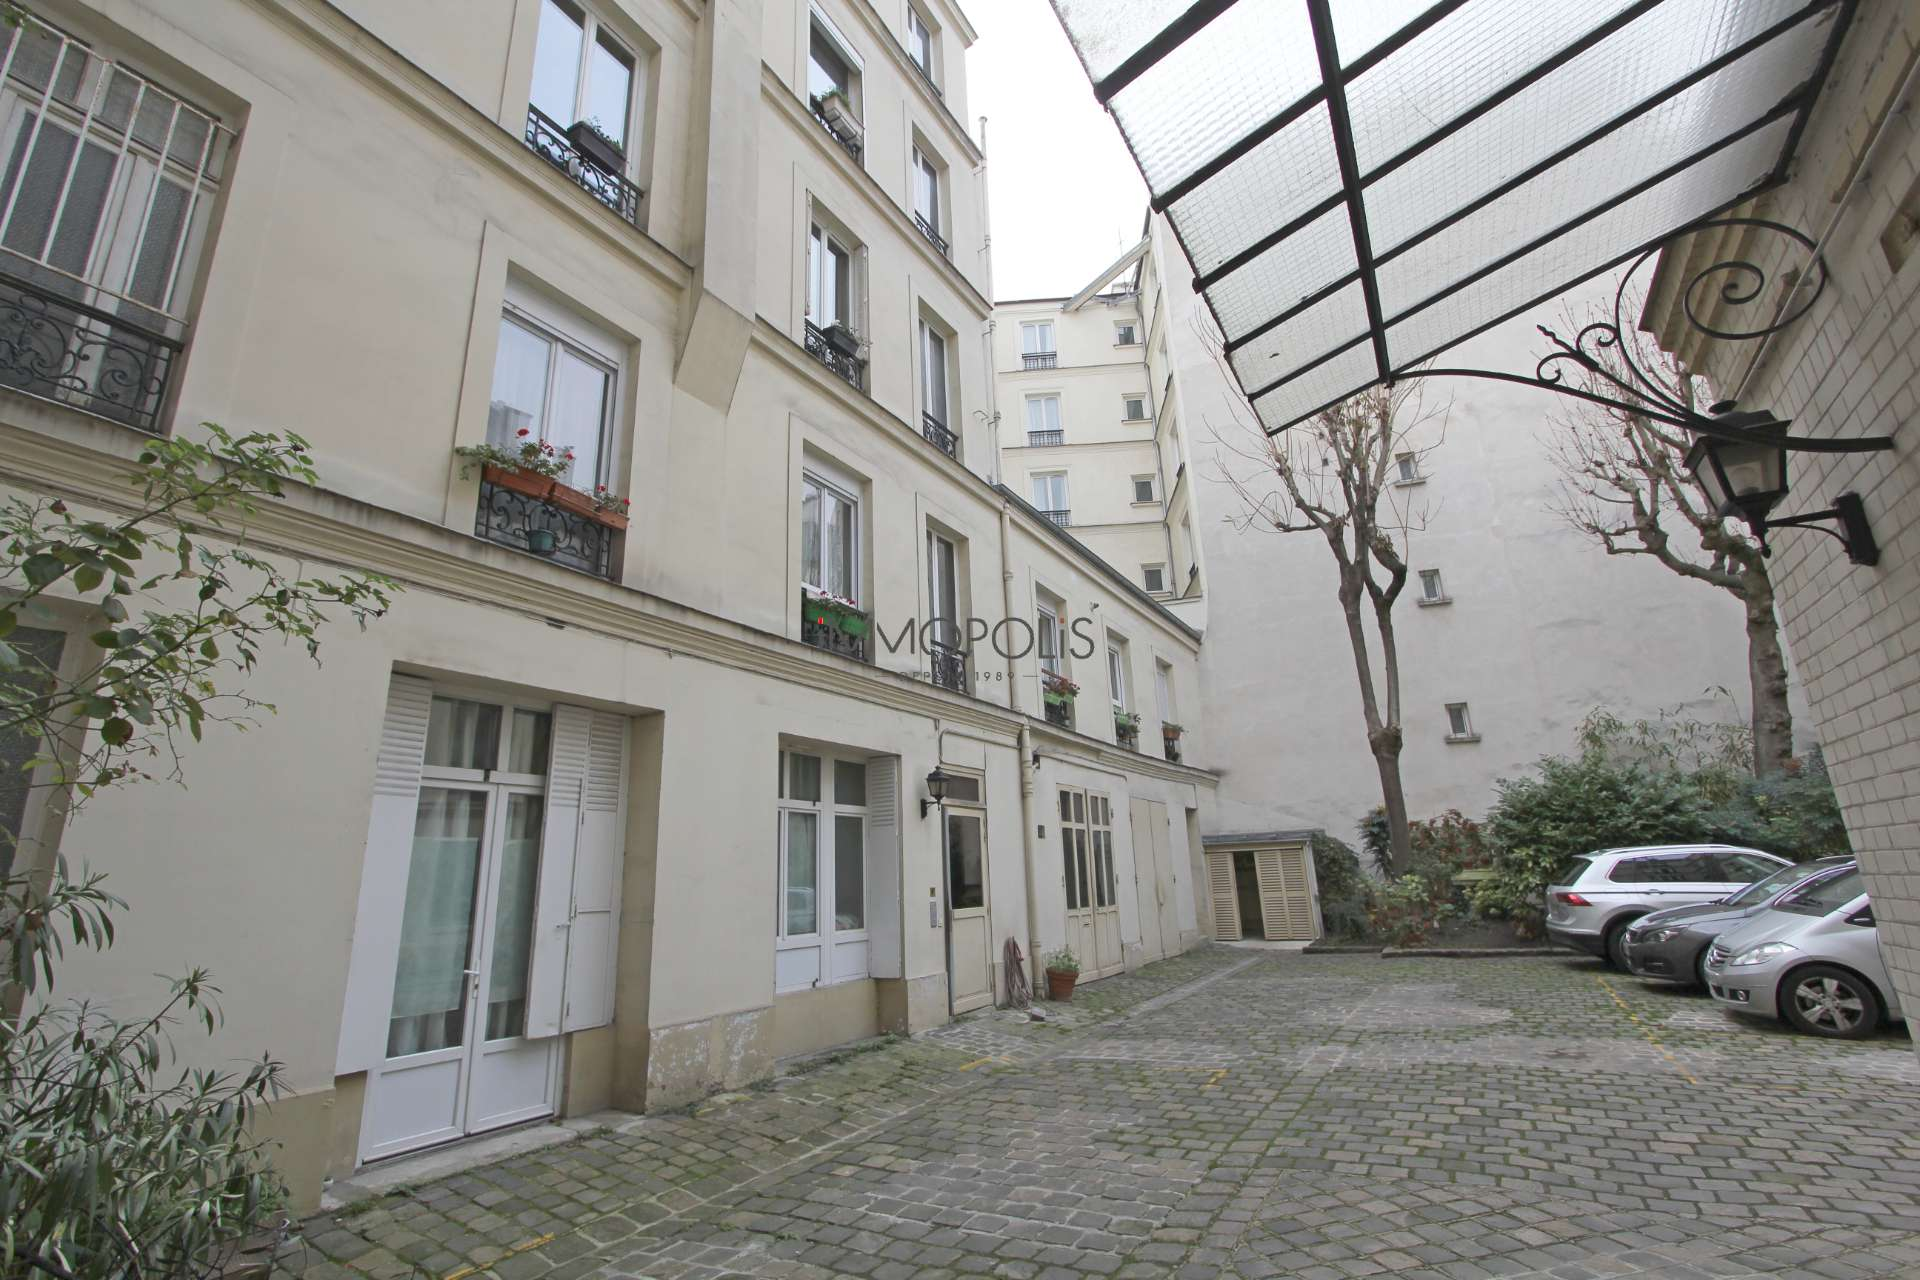 District Europe (rue Clapeyron in the 8th arrondissement), Legally launched studio of 9.88 m² Law Carrez located in a beautiful well maintained building 9